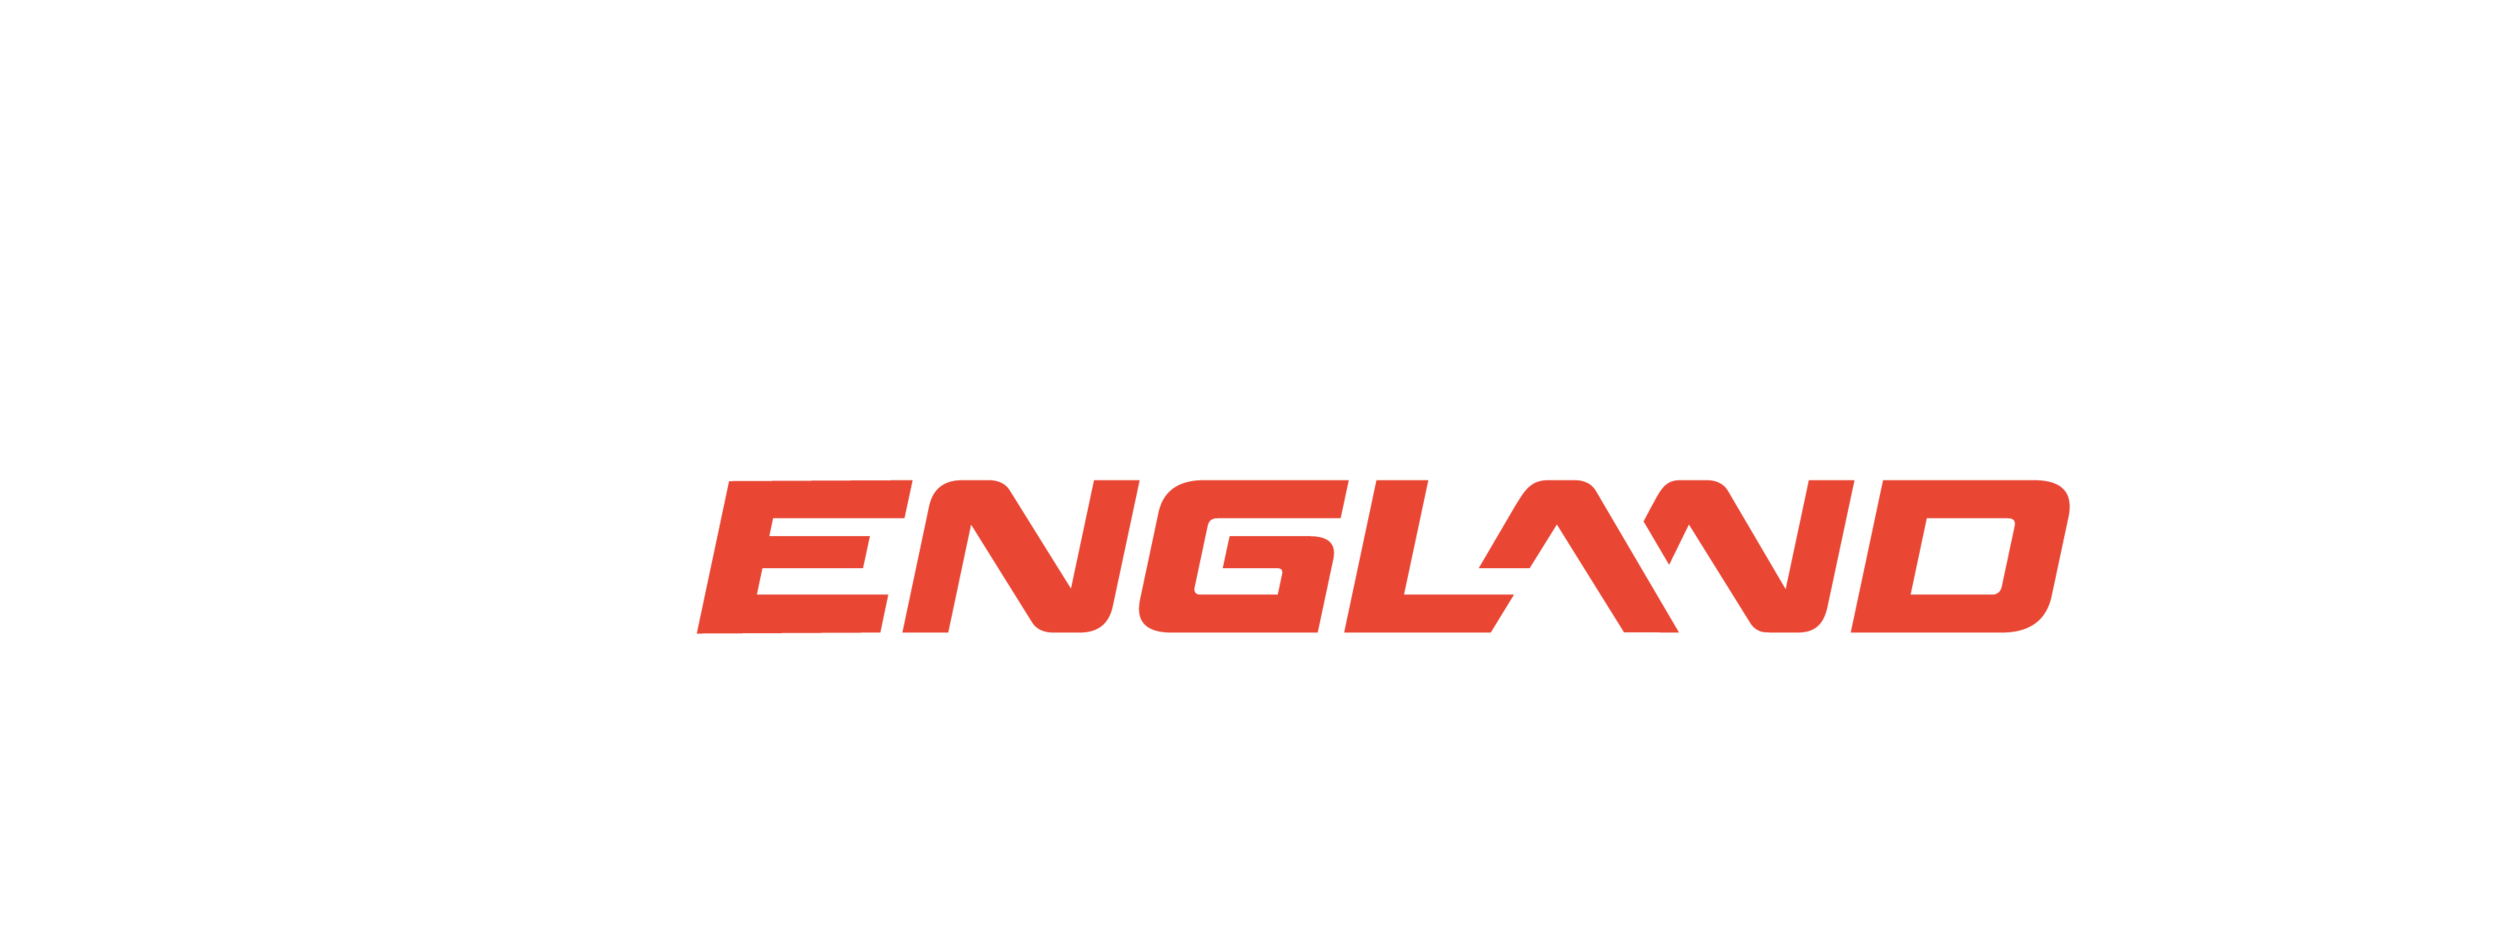 Snowsport England Logo RED & WHITE.png